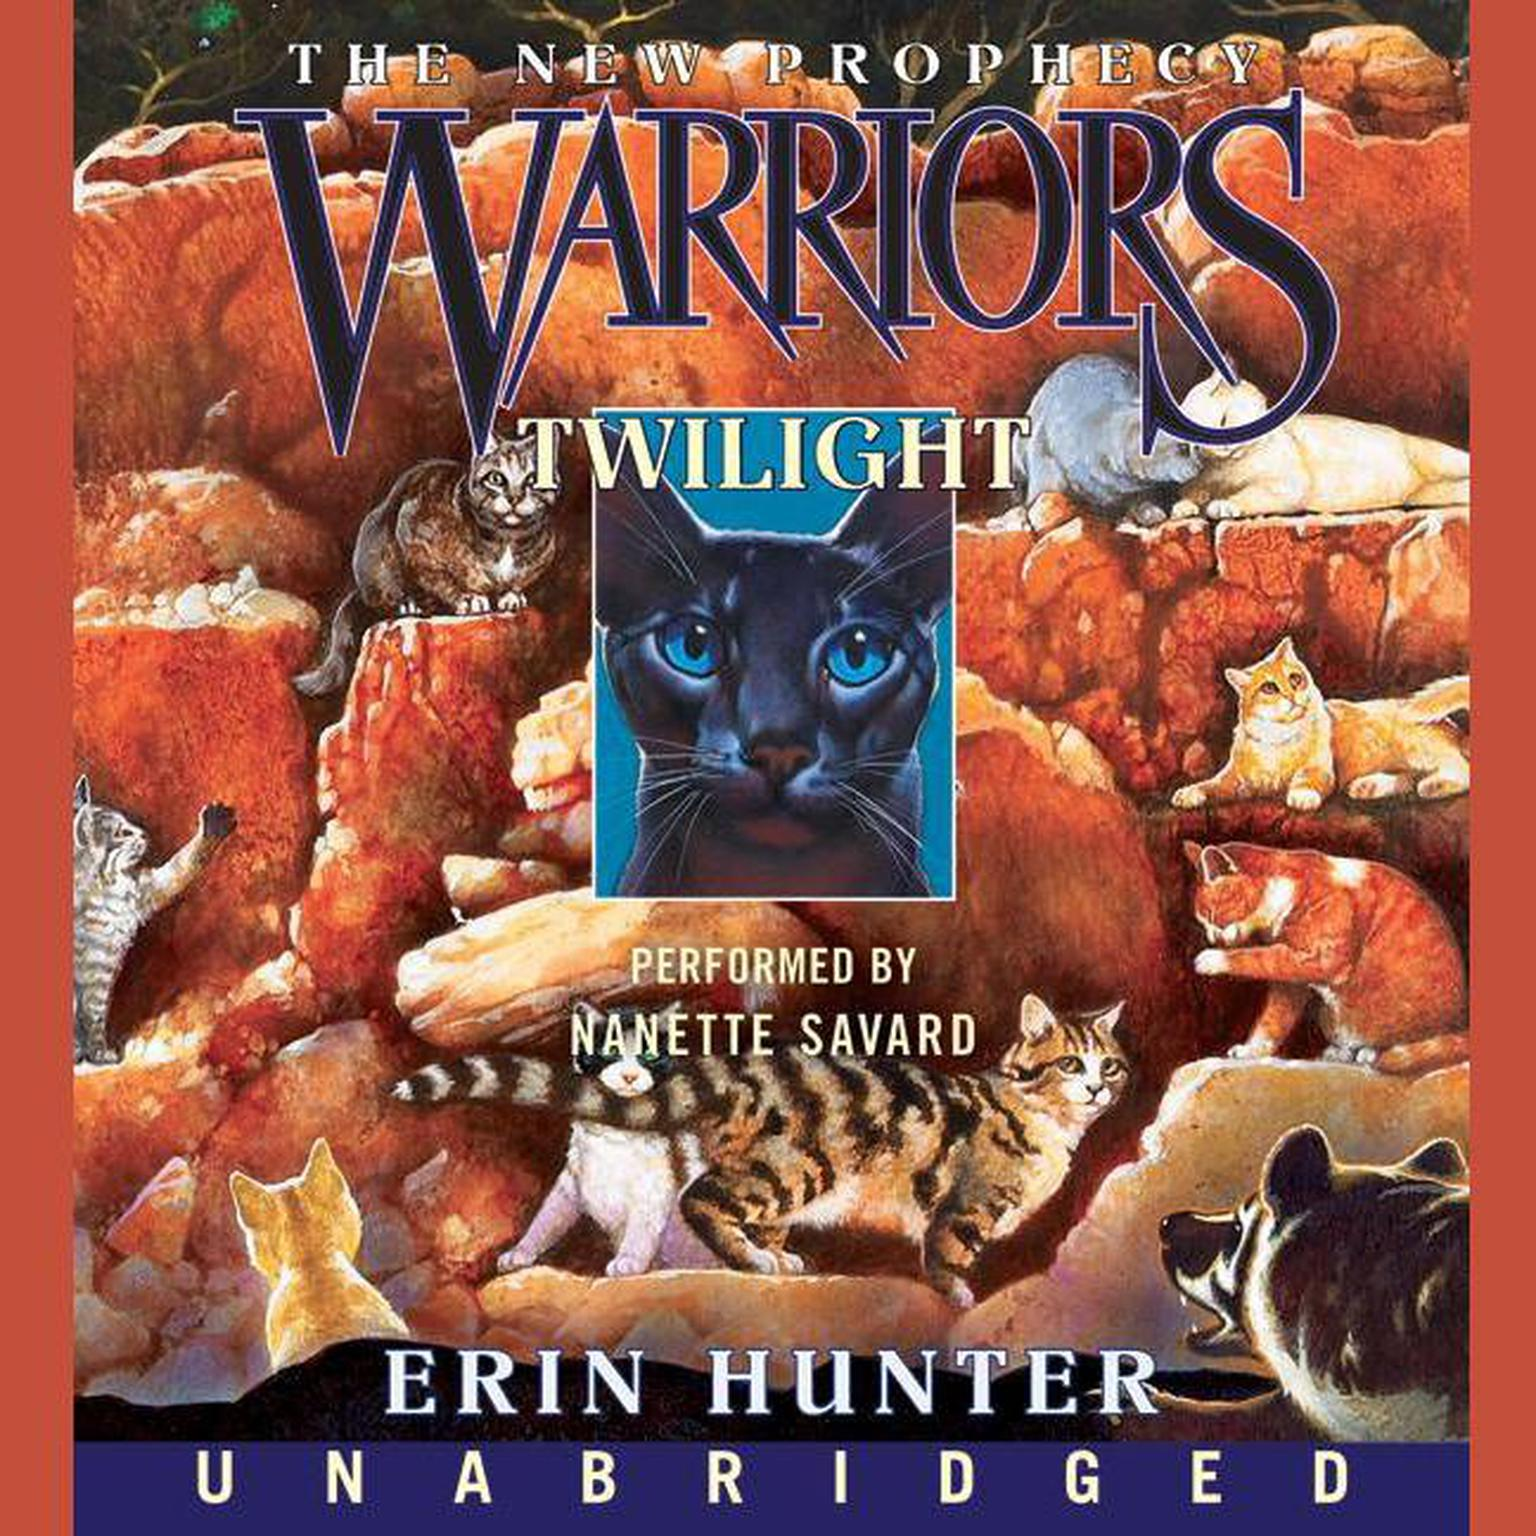 Warriors Book Series Review: Warriors: The New Prophecy #5: Twilight